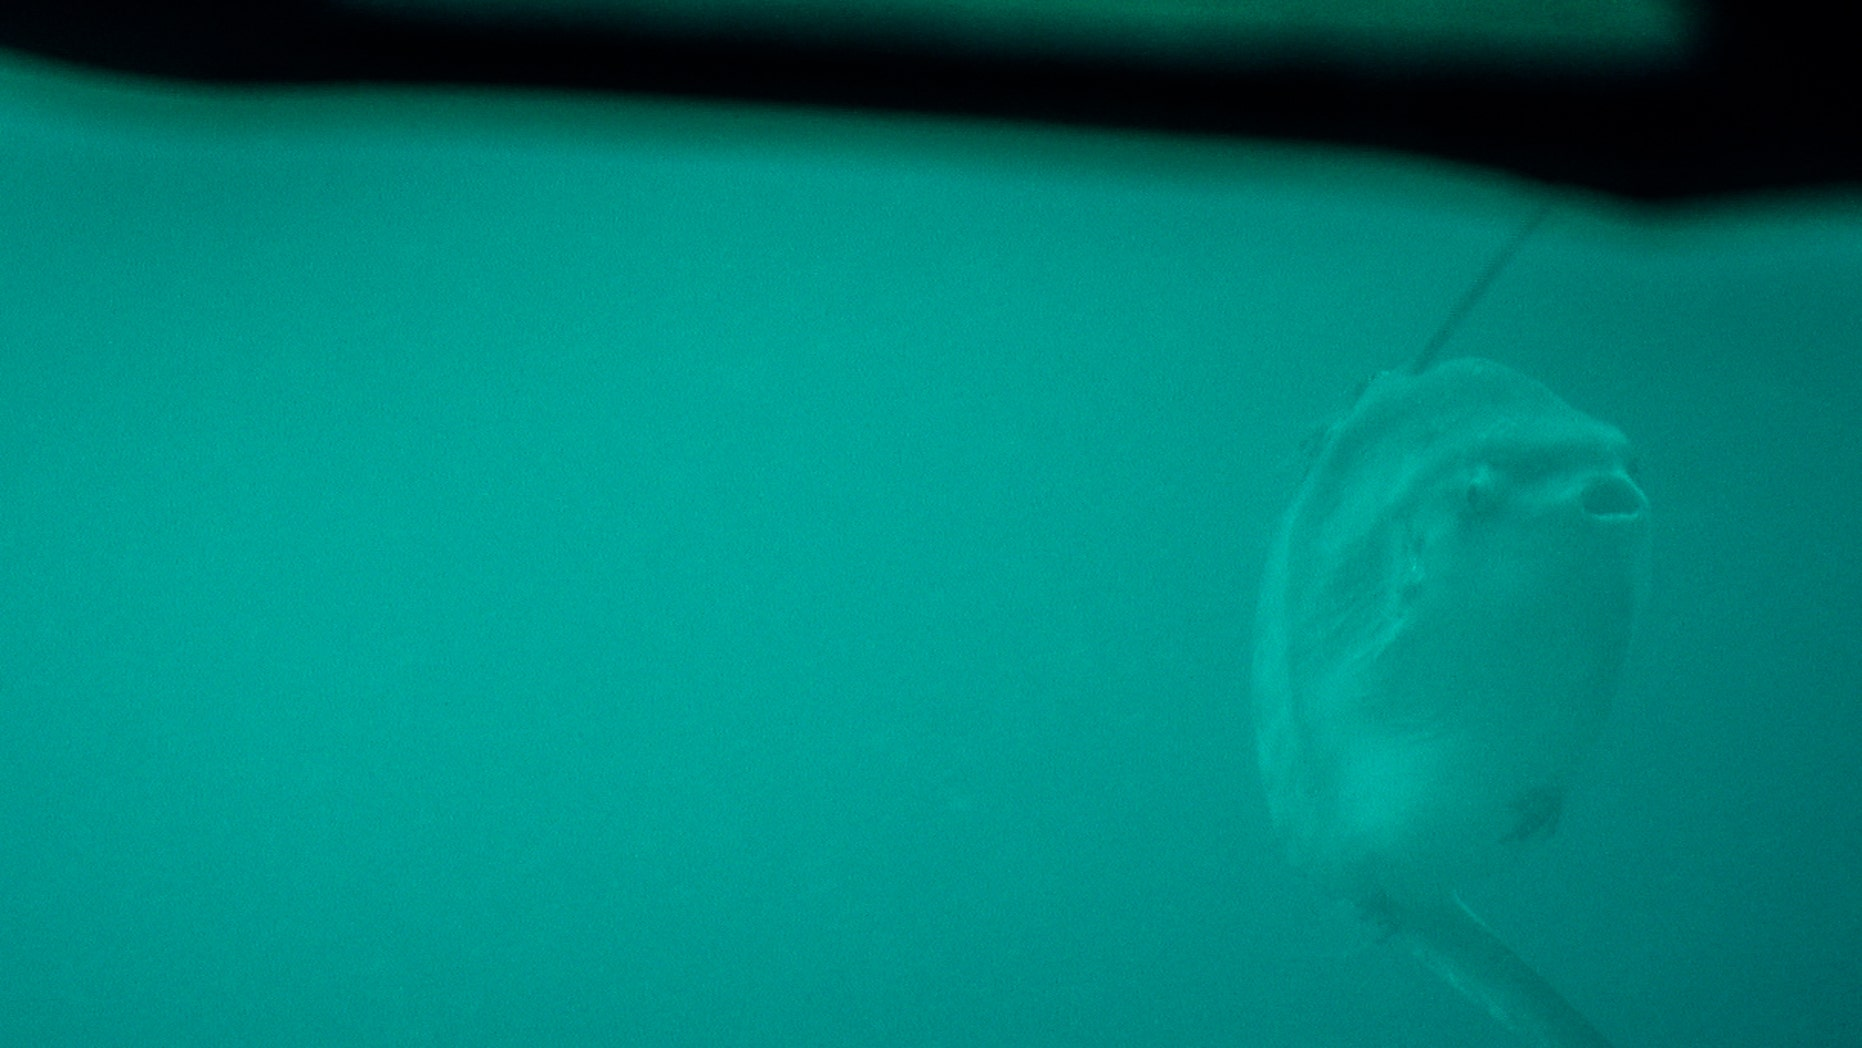 Scientists aboard the E/V Nautilus spotted the world's largest bony fish, the Mola mola.